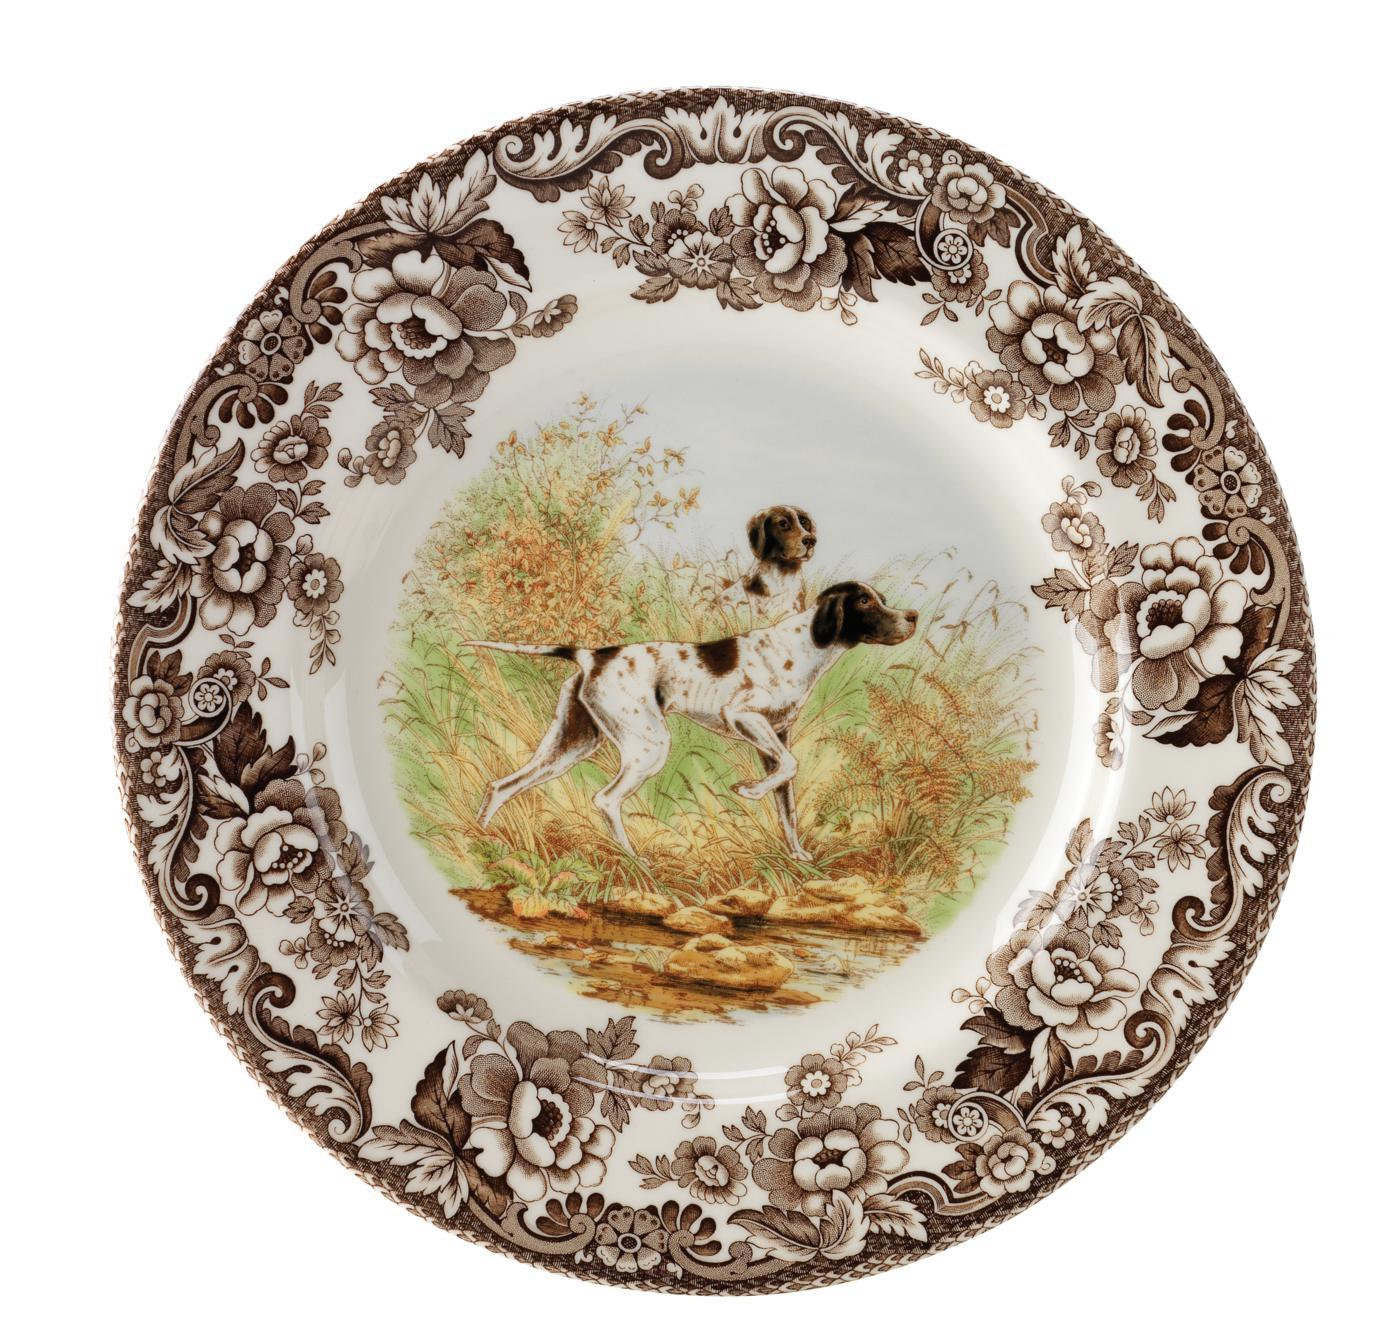 Spode Woodland Salad Plate 8 Inch (Flat Coated Pointer) image number 0